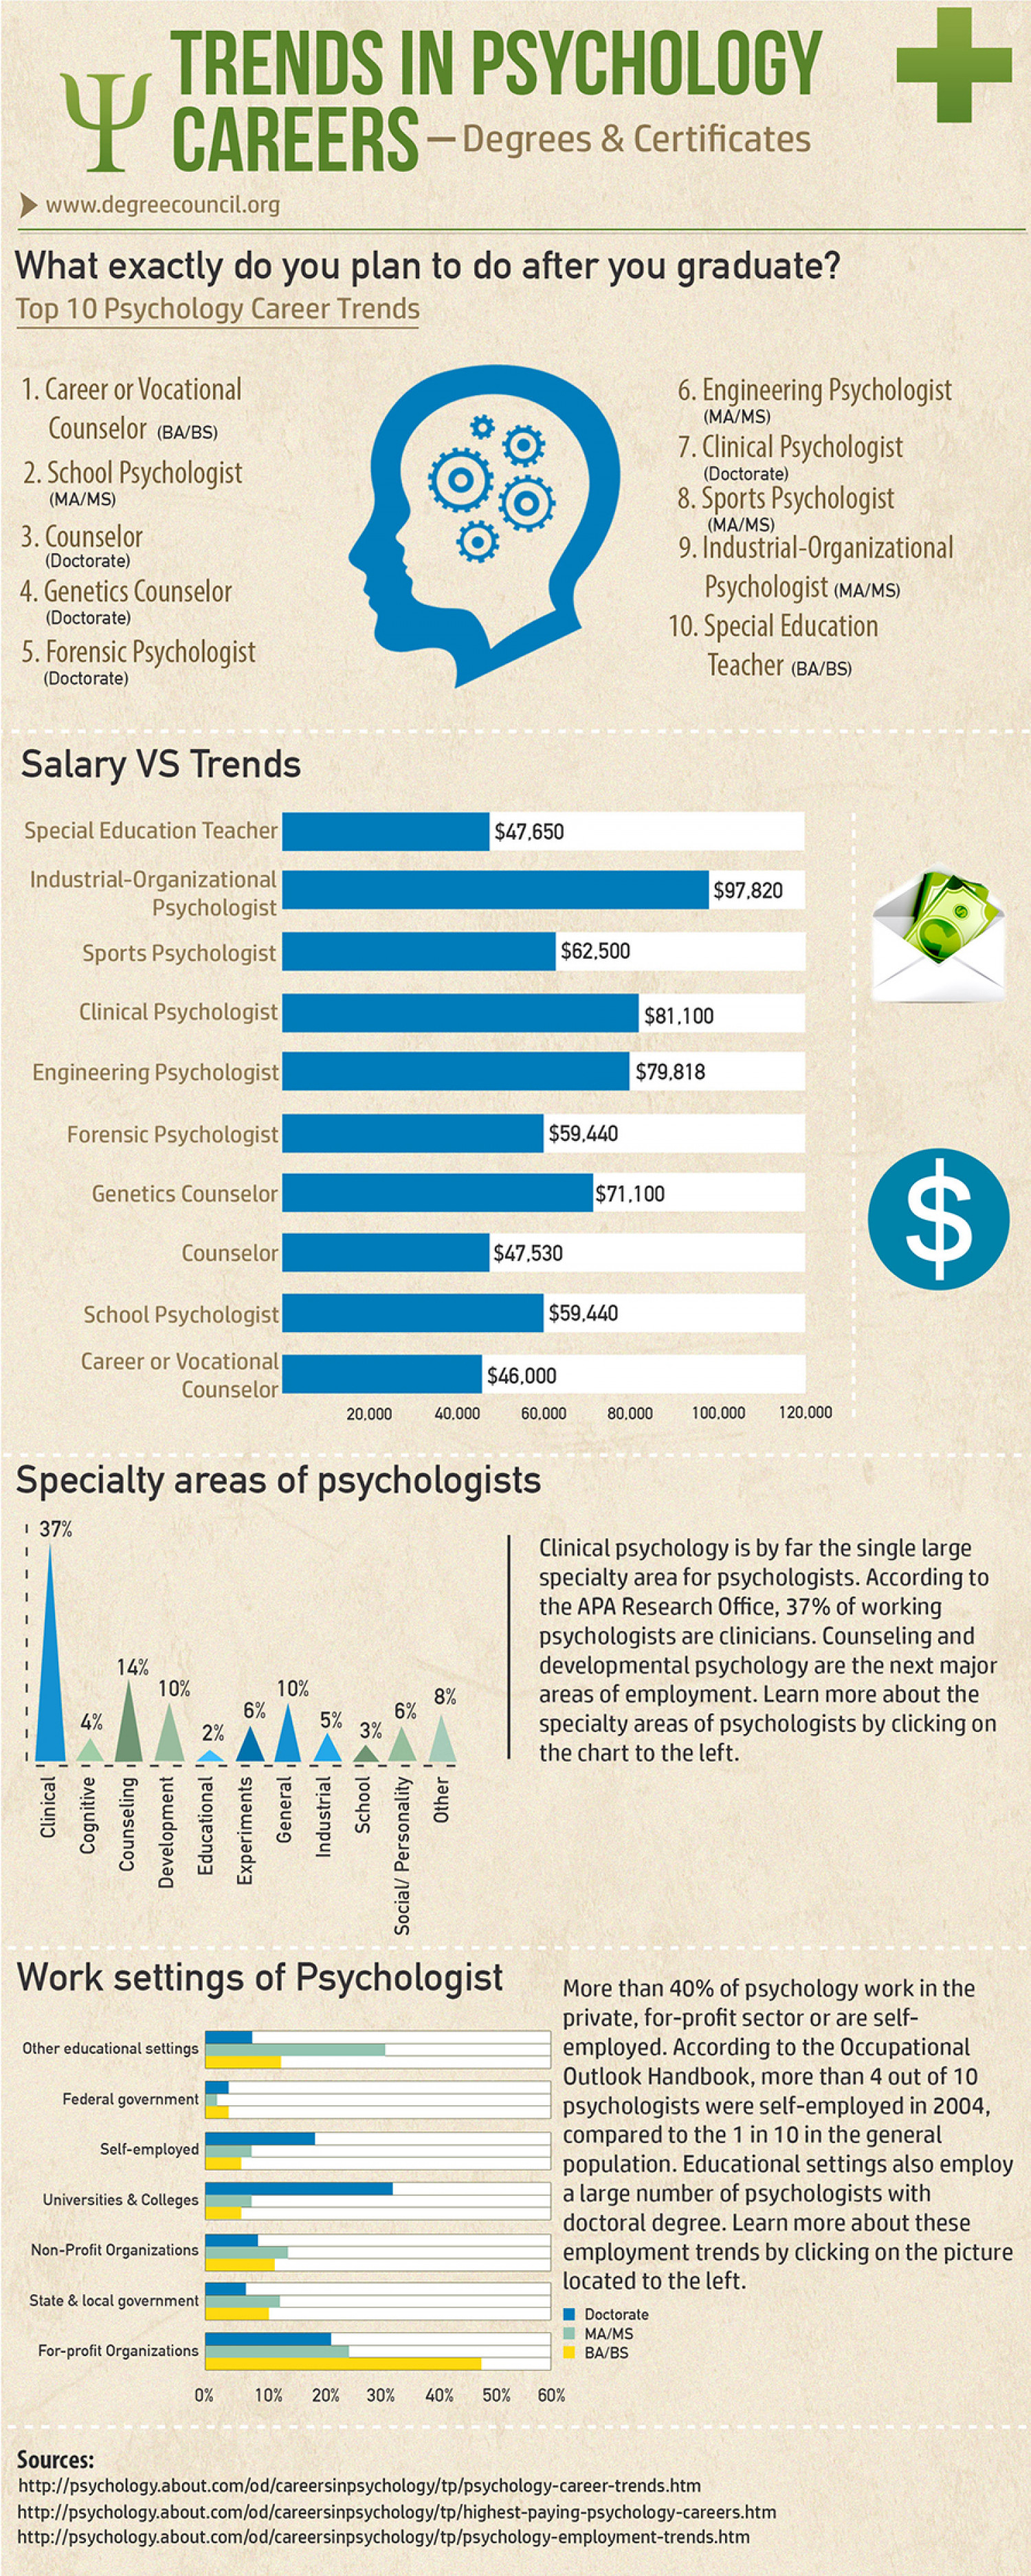 Trends in Psychology Degrees & Certificates Infographic